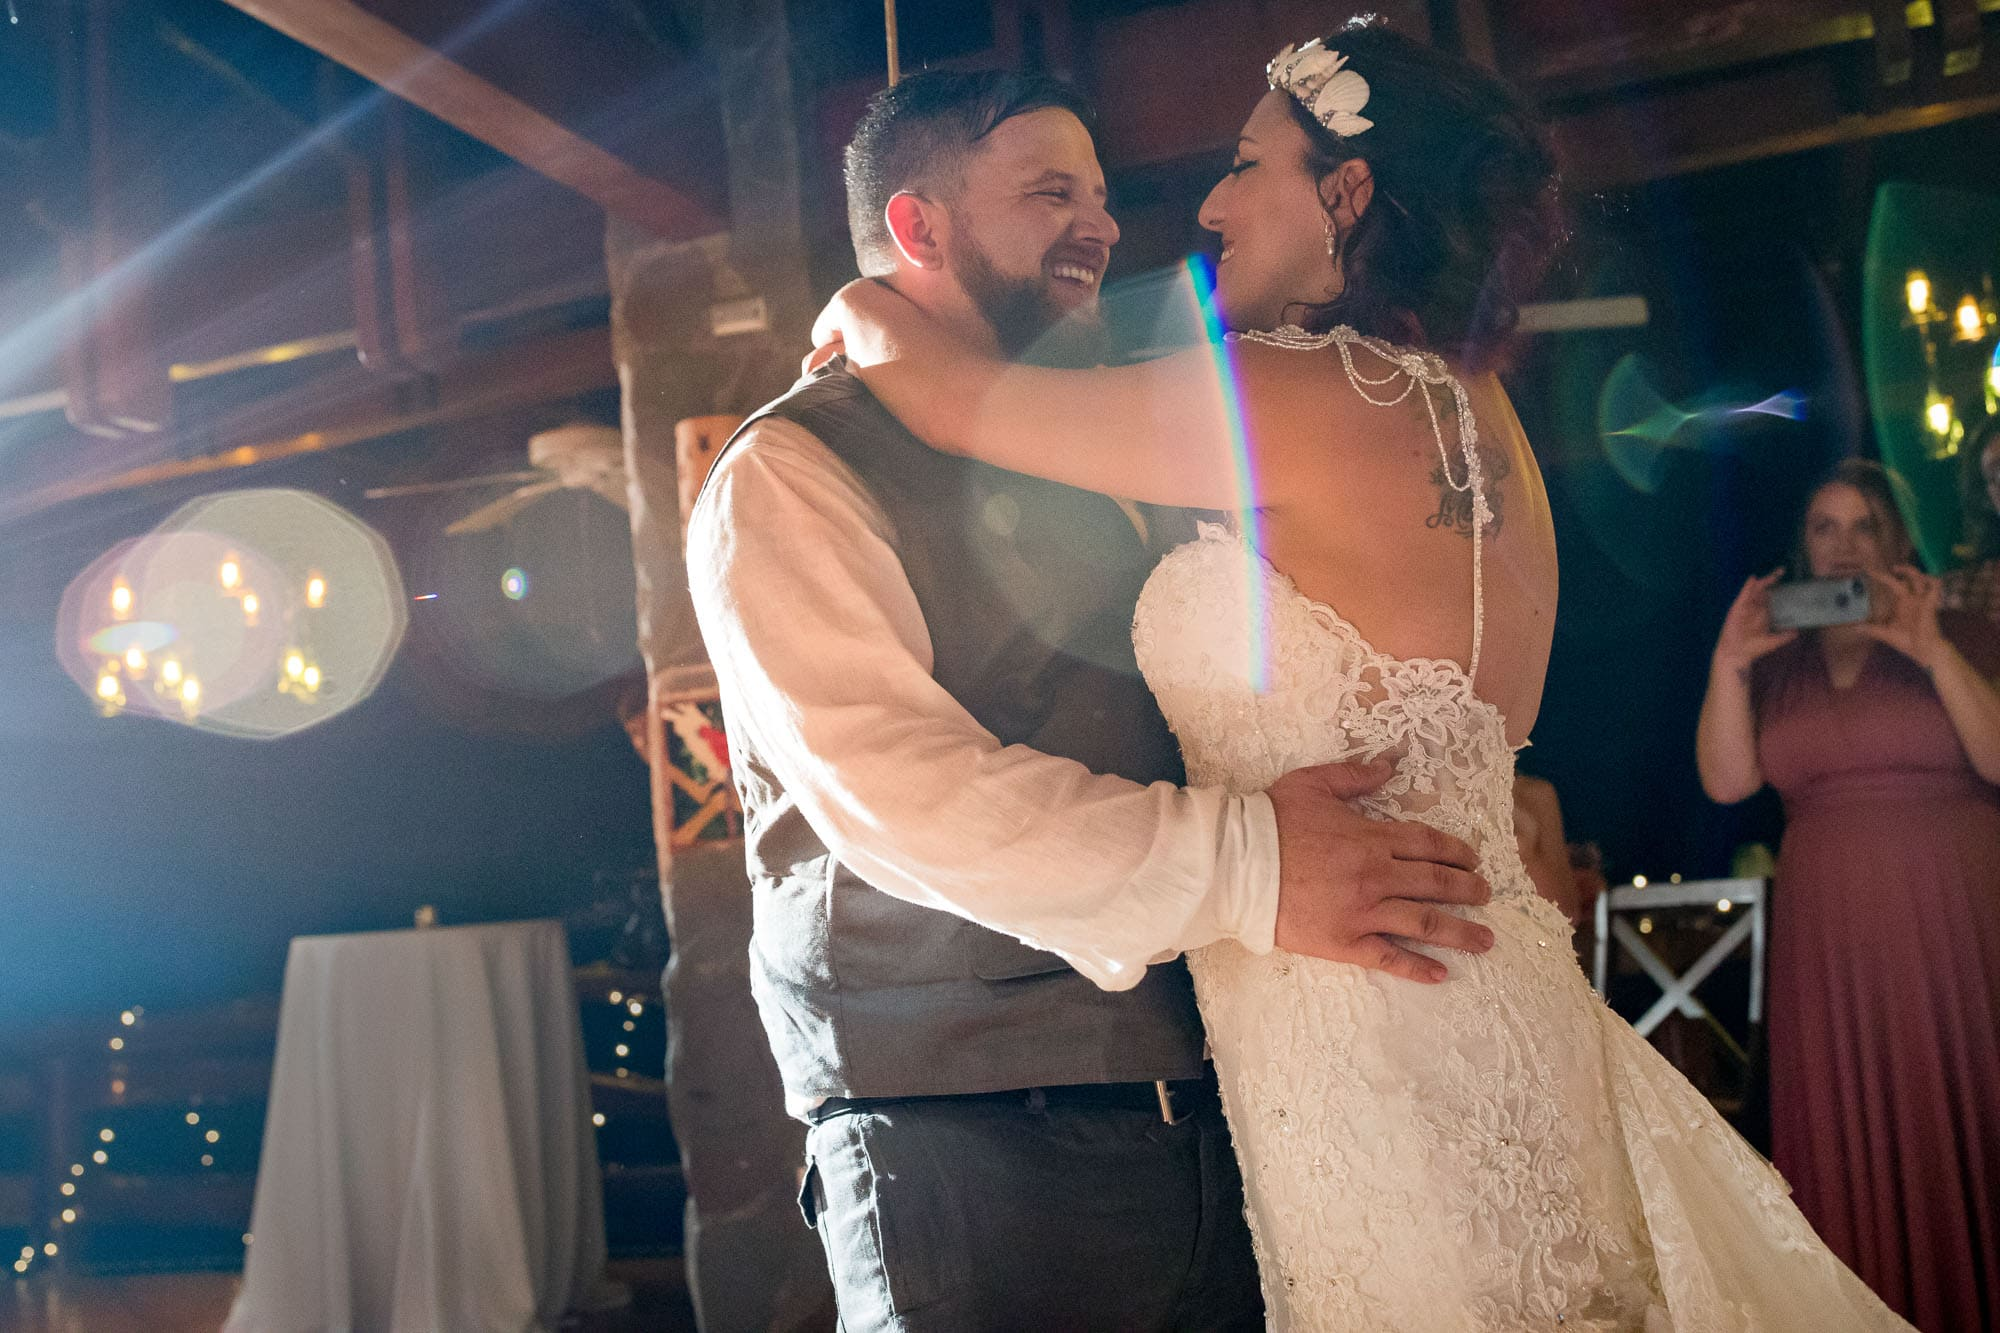 Love blooms as the bride and groom dance together